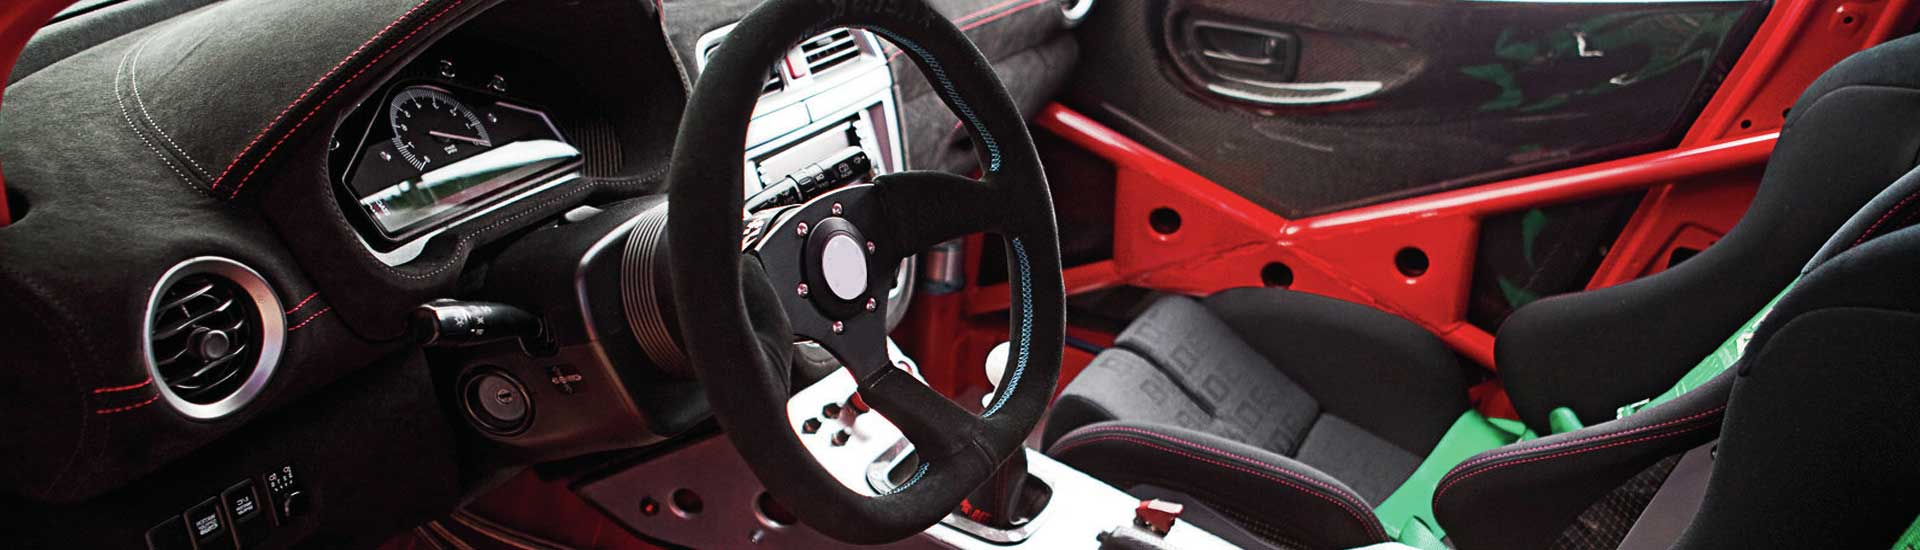 Spec-D Tuning Steering Wheels